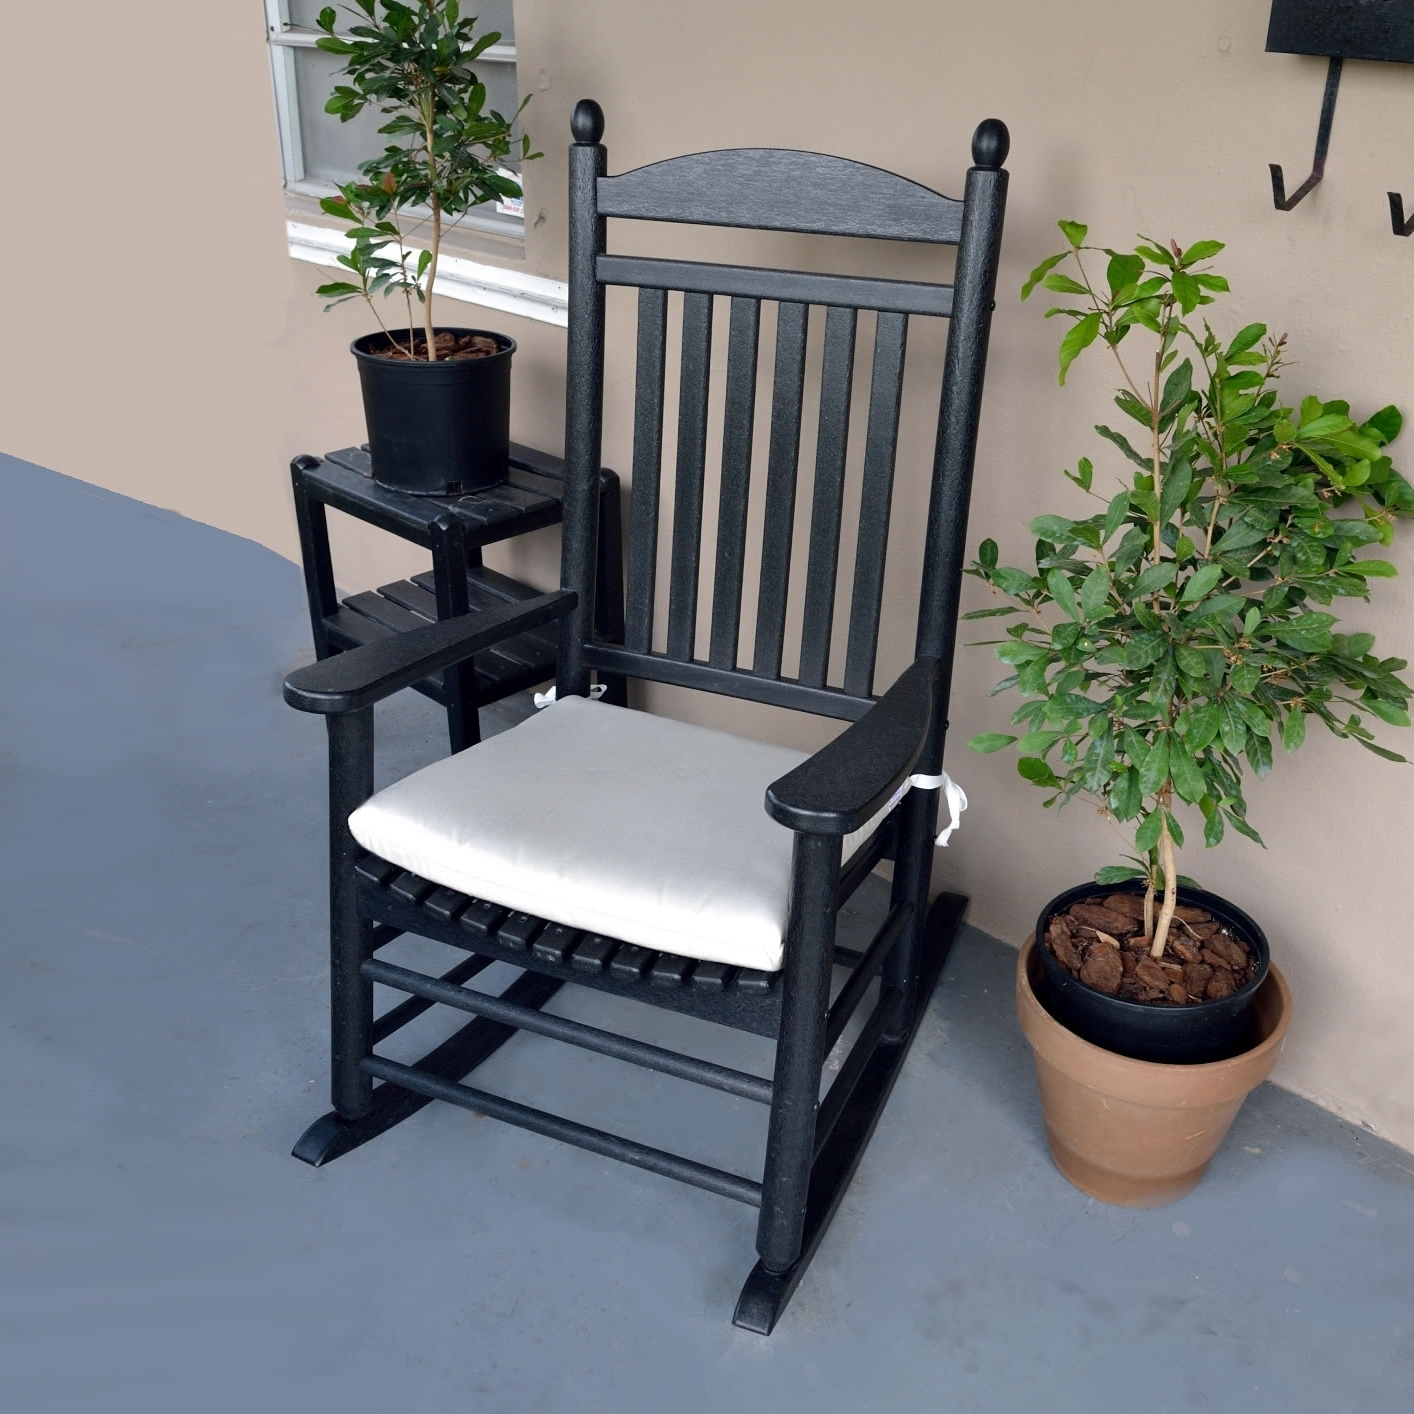 Rocking Chair Cushions For Outdoor Throughout Latest Polywood Rocking Chair Seat Cushions – Outdoor Cushions – Accessories (View 2 of 20)